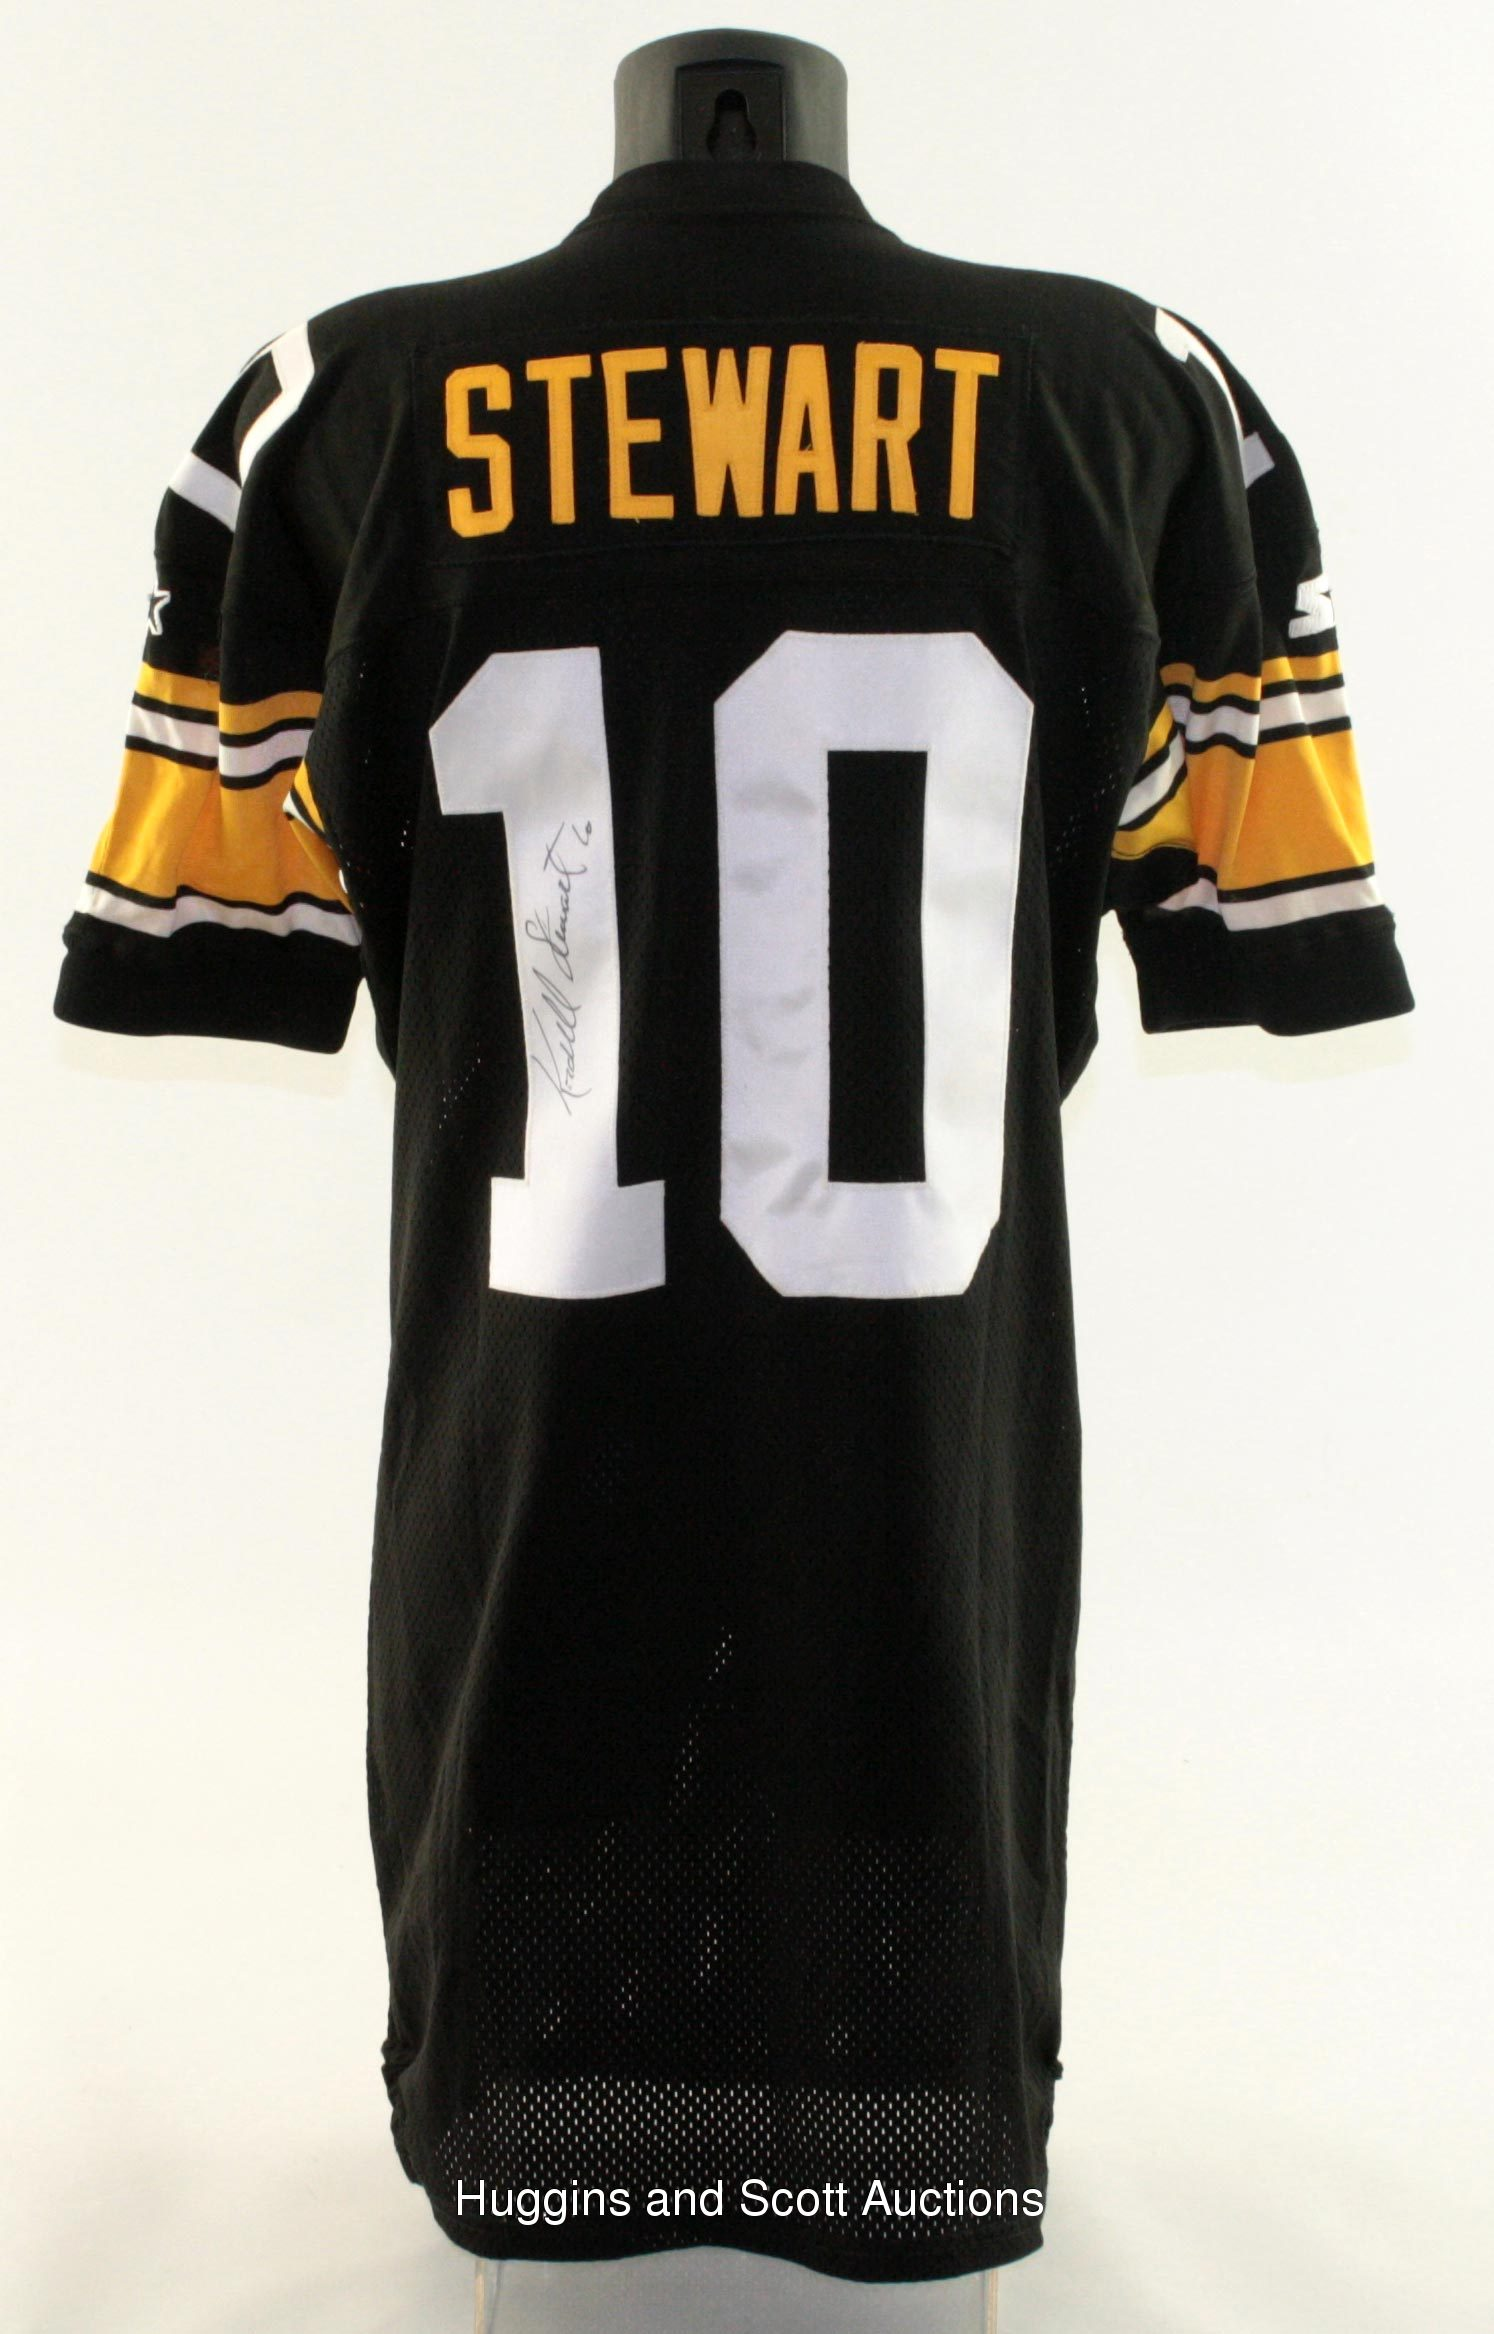 Kordell Stewart 1996 Pittsburgh Steelers Signed Game-Worn Home Jersey